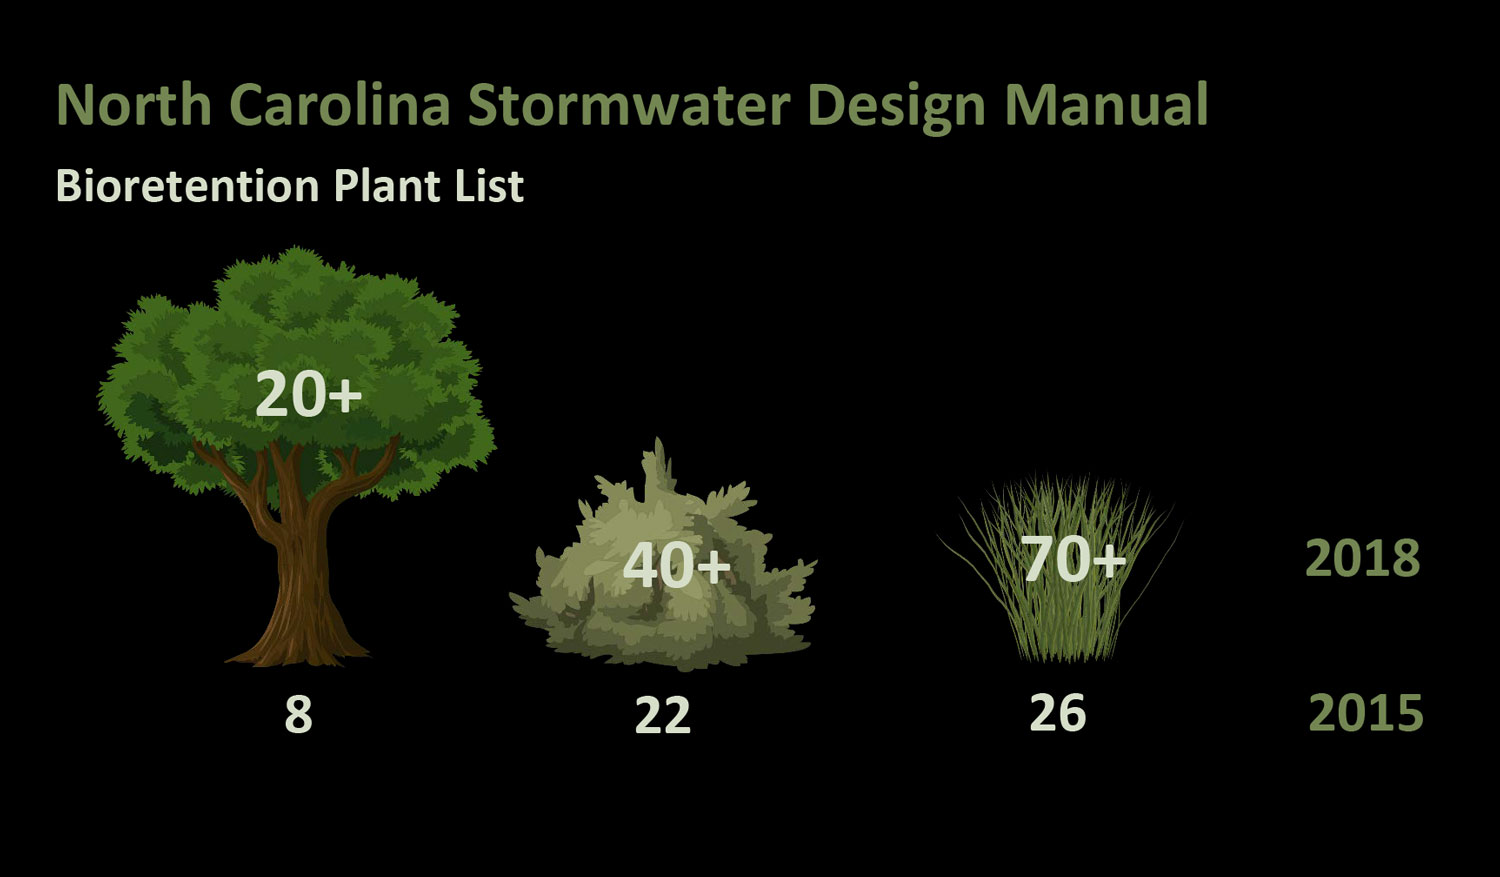 The Updated Plant Lists Included More Tree Shrub And Perennial Species For Bioretention Cells